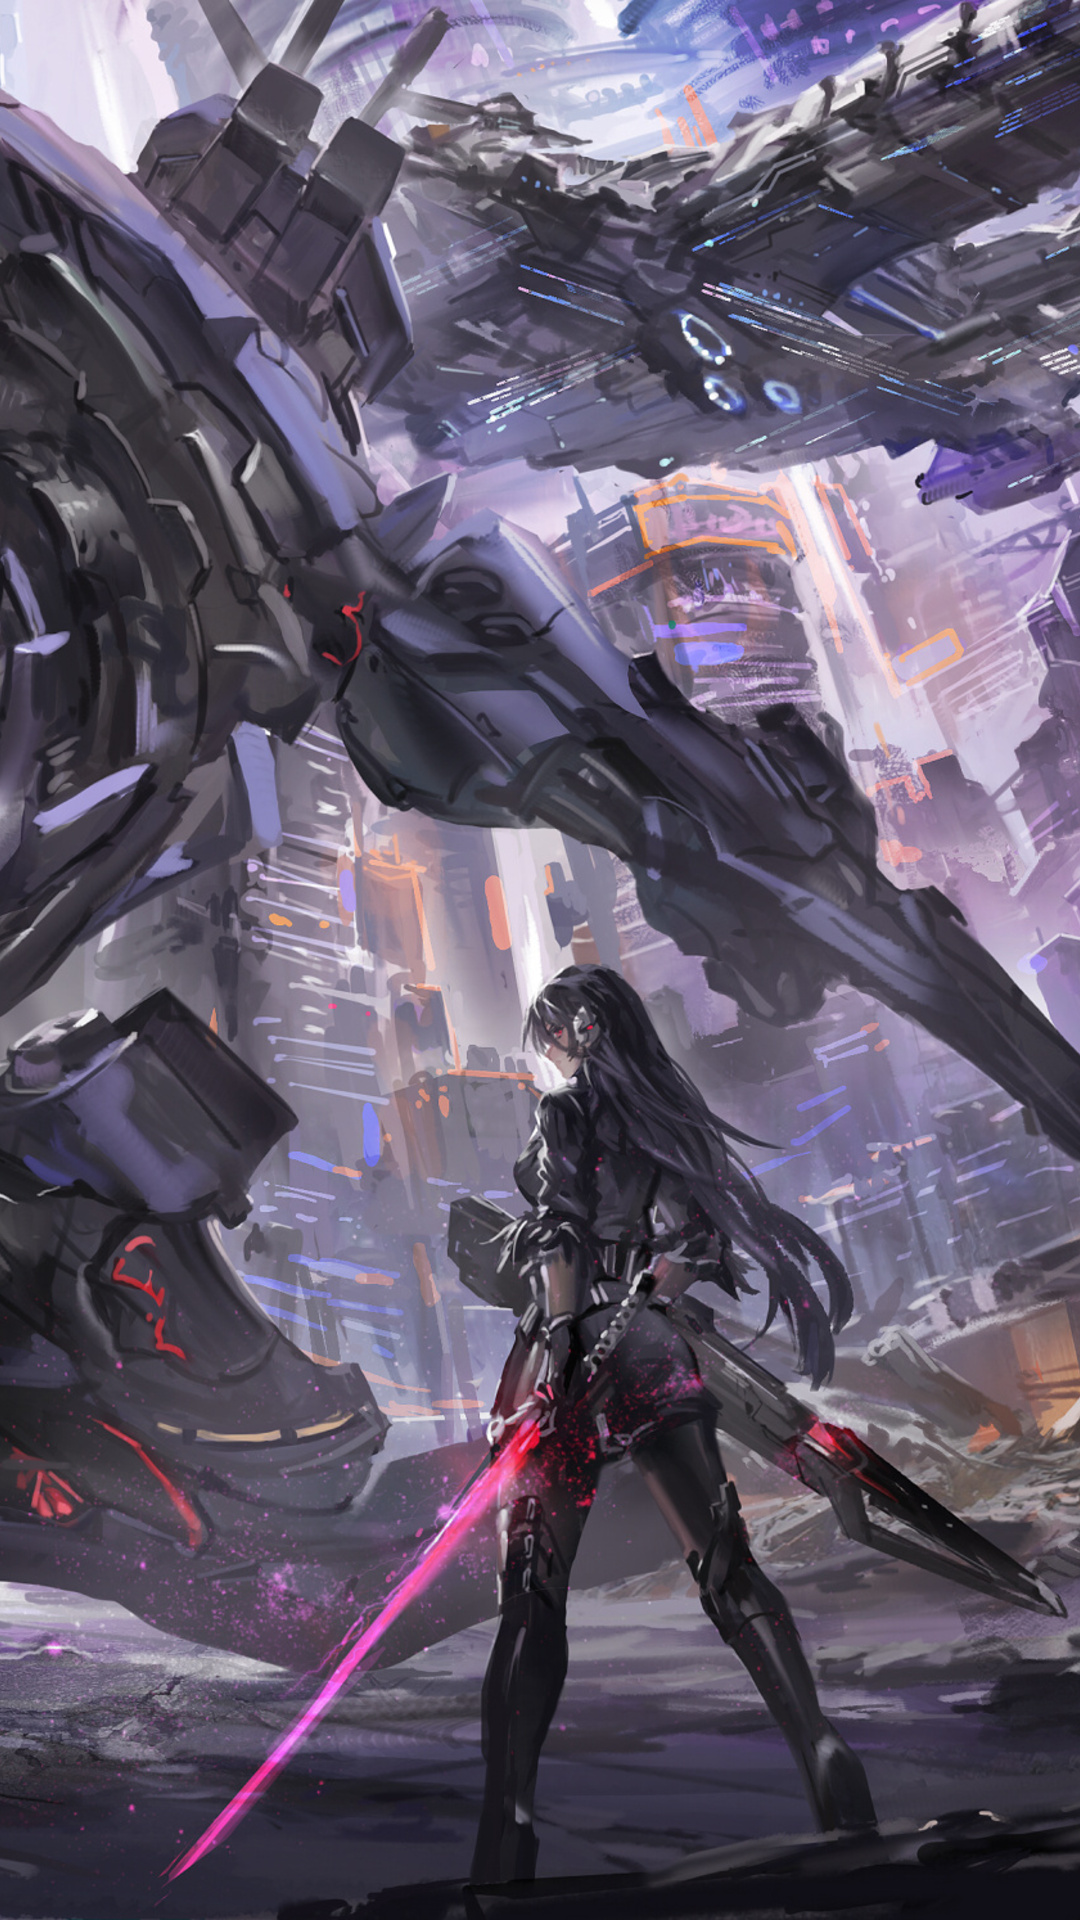 1080x1920 robot scifi anime war iphone 7 6s 6 plus pixel - Anime wallpaper hd iphone 7 ...